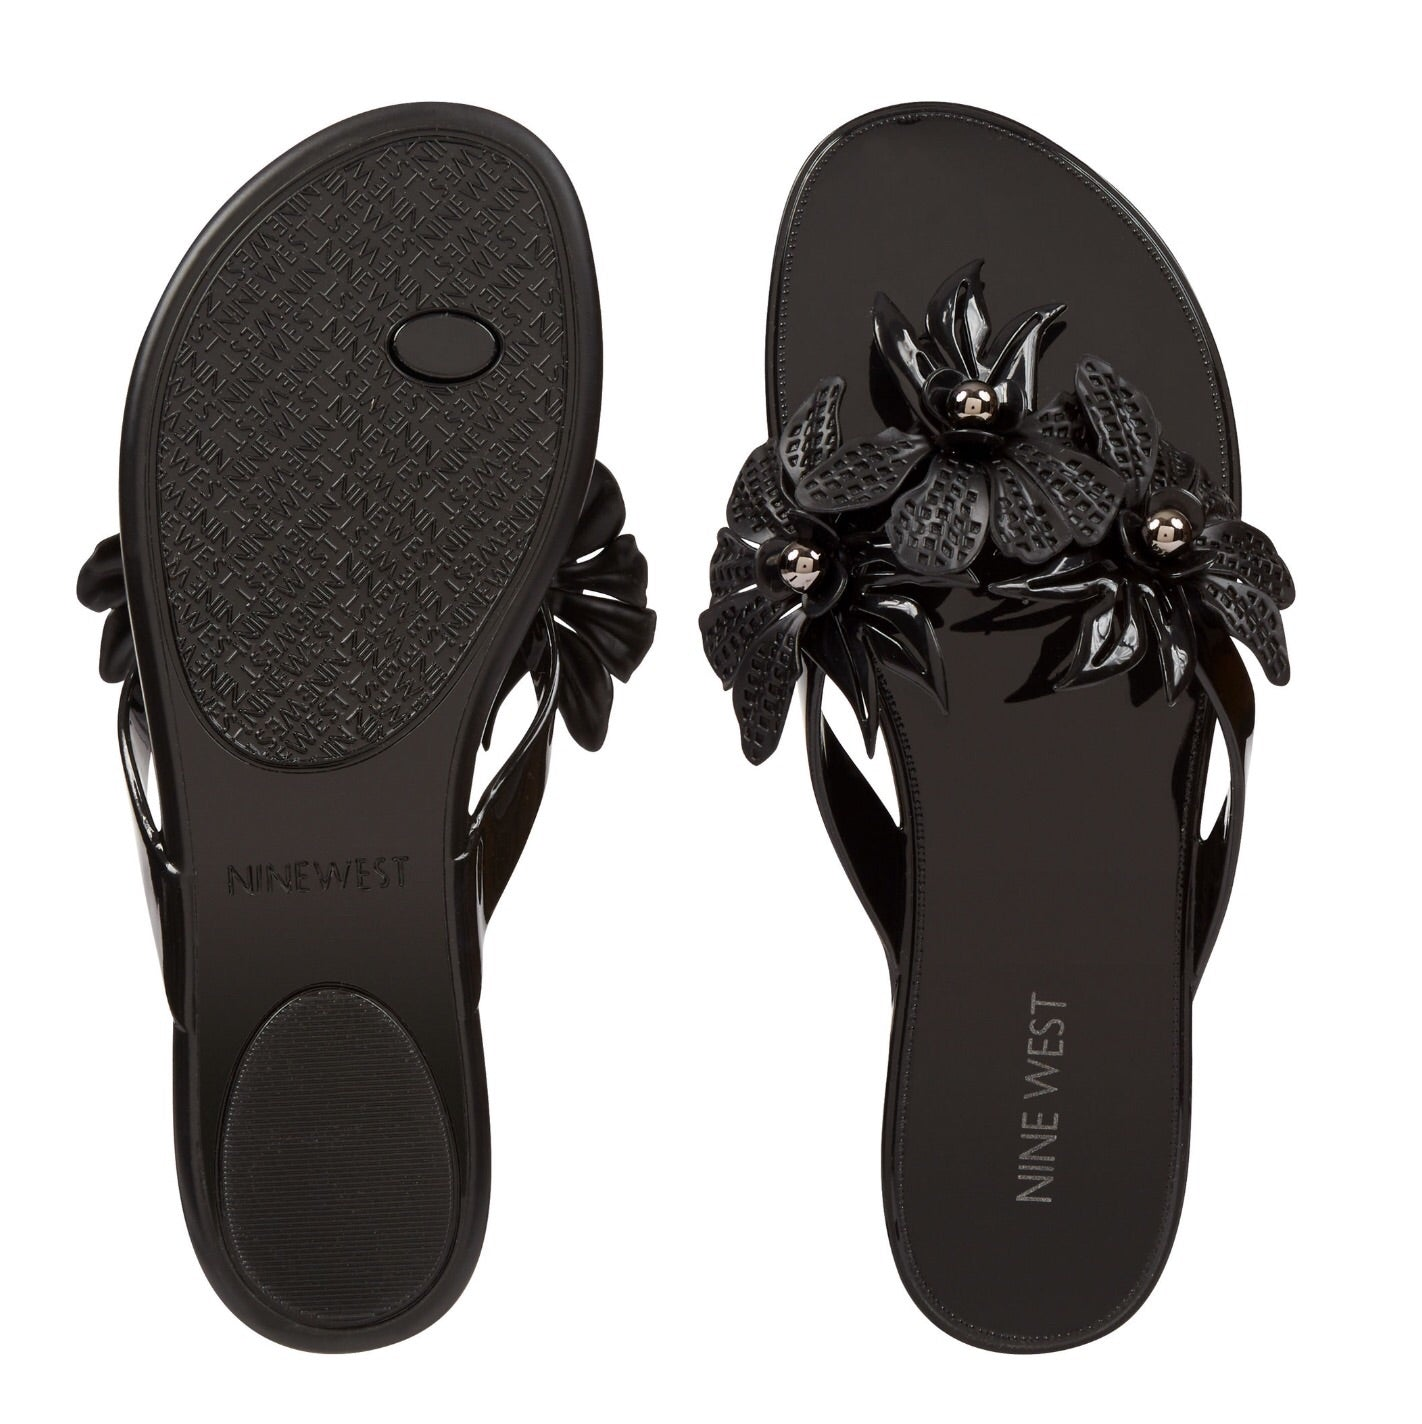 Nine West Slipper